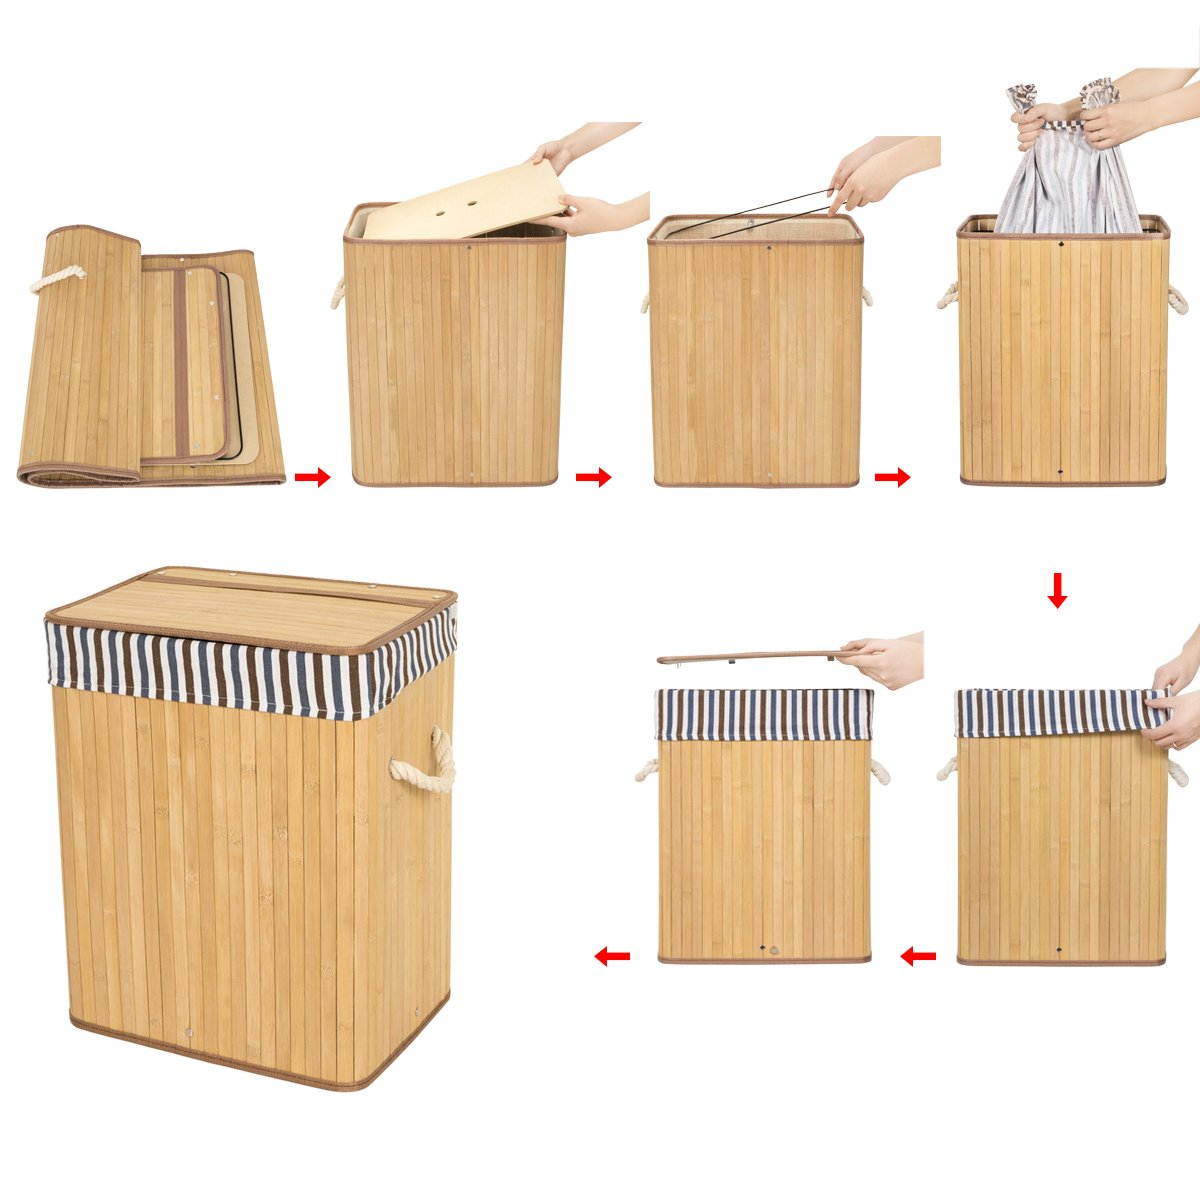 ZERO JET LAG 40L Bamboo Laundry Hamper Laundry Basket Dirty Clothes Box Natural Laundry Bin Lid Handles Removable Liner Collapsible Dirty Clothes Organizer(Brown)